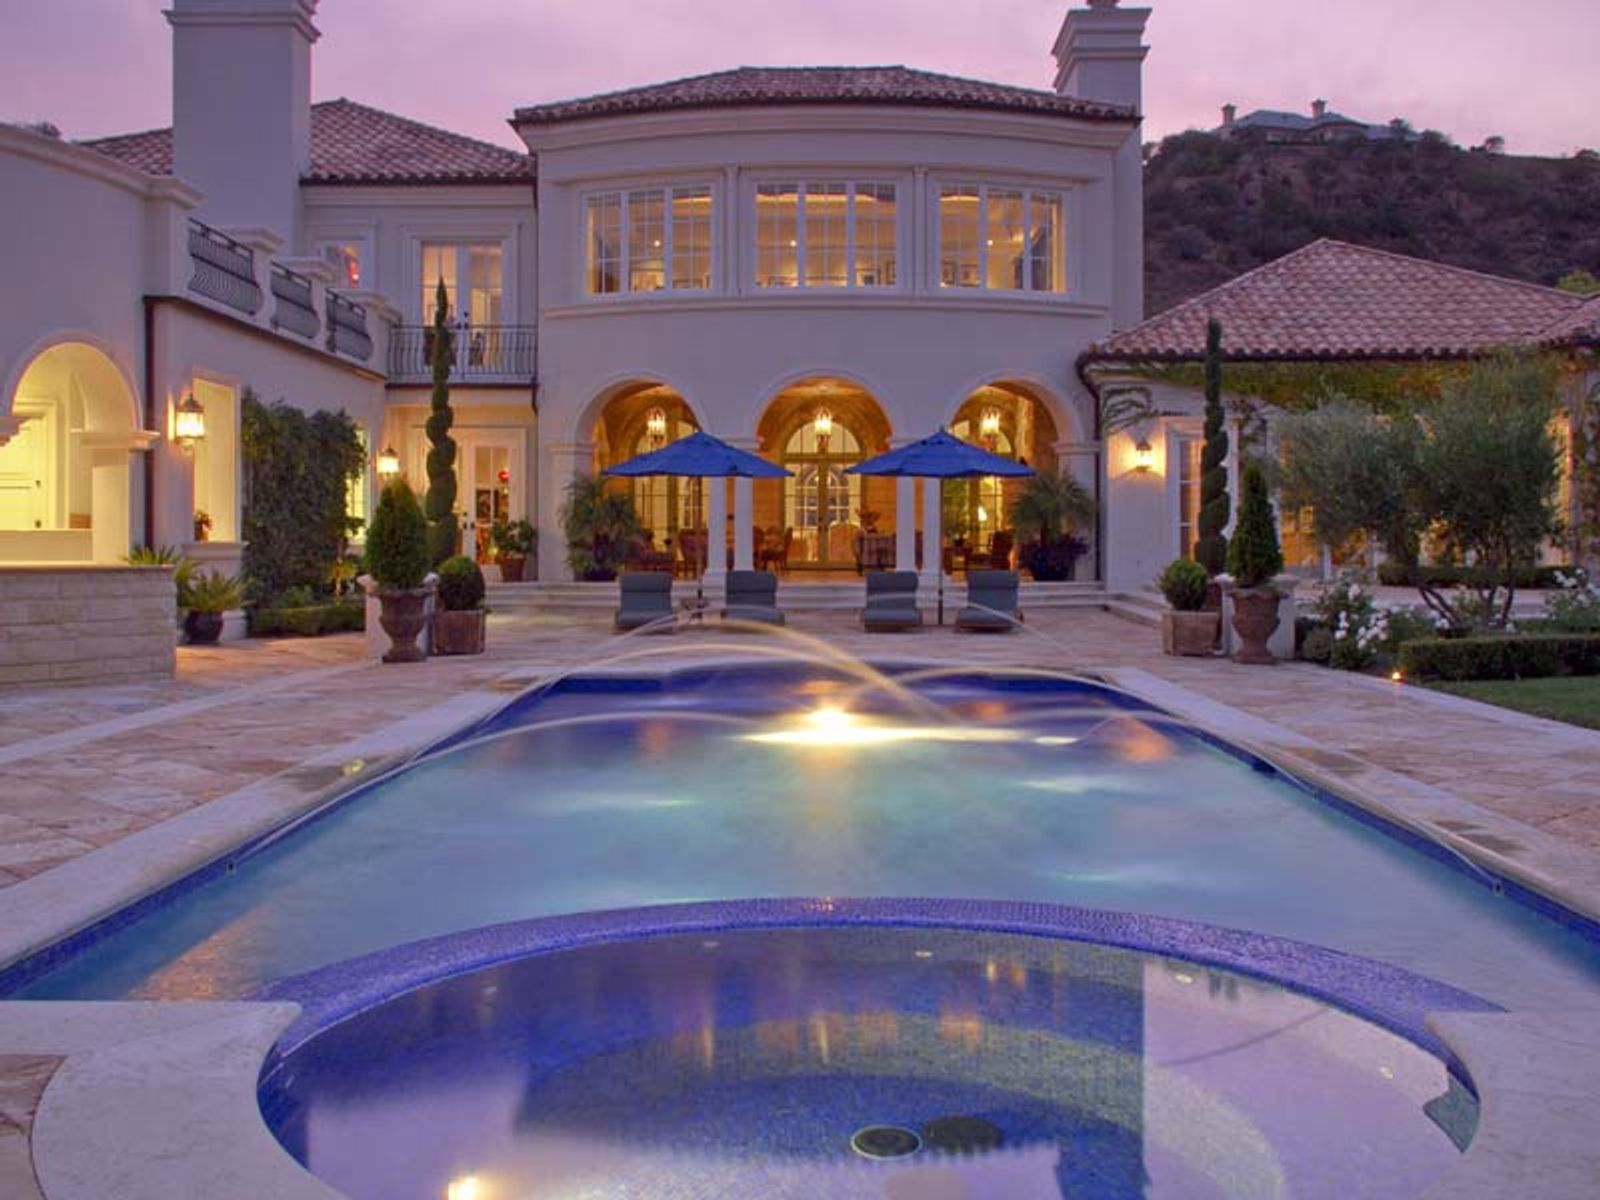 Old World European-style Estate, Thousand Oaks CA Single Family Home - Ventura Real Estate